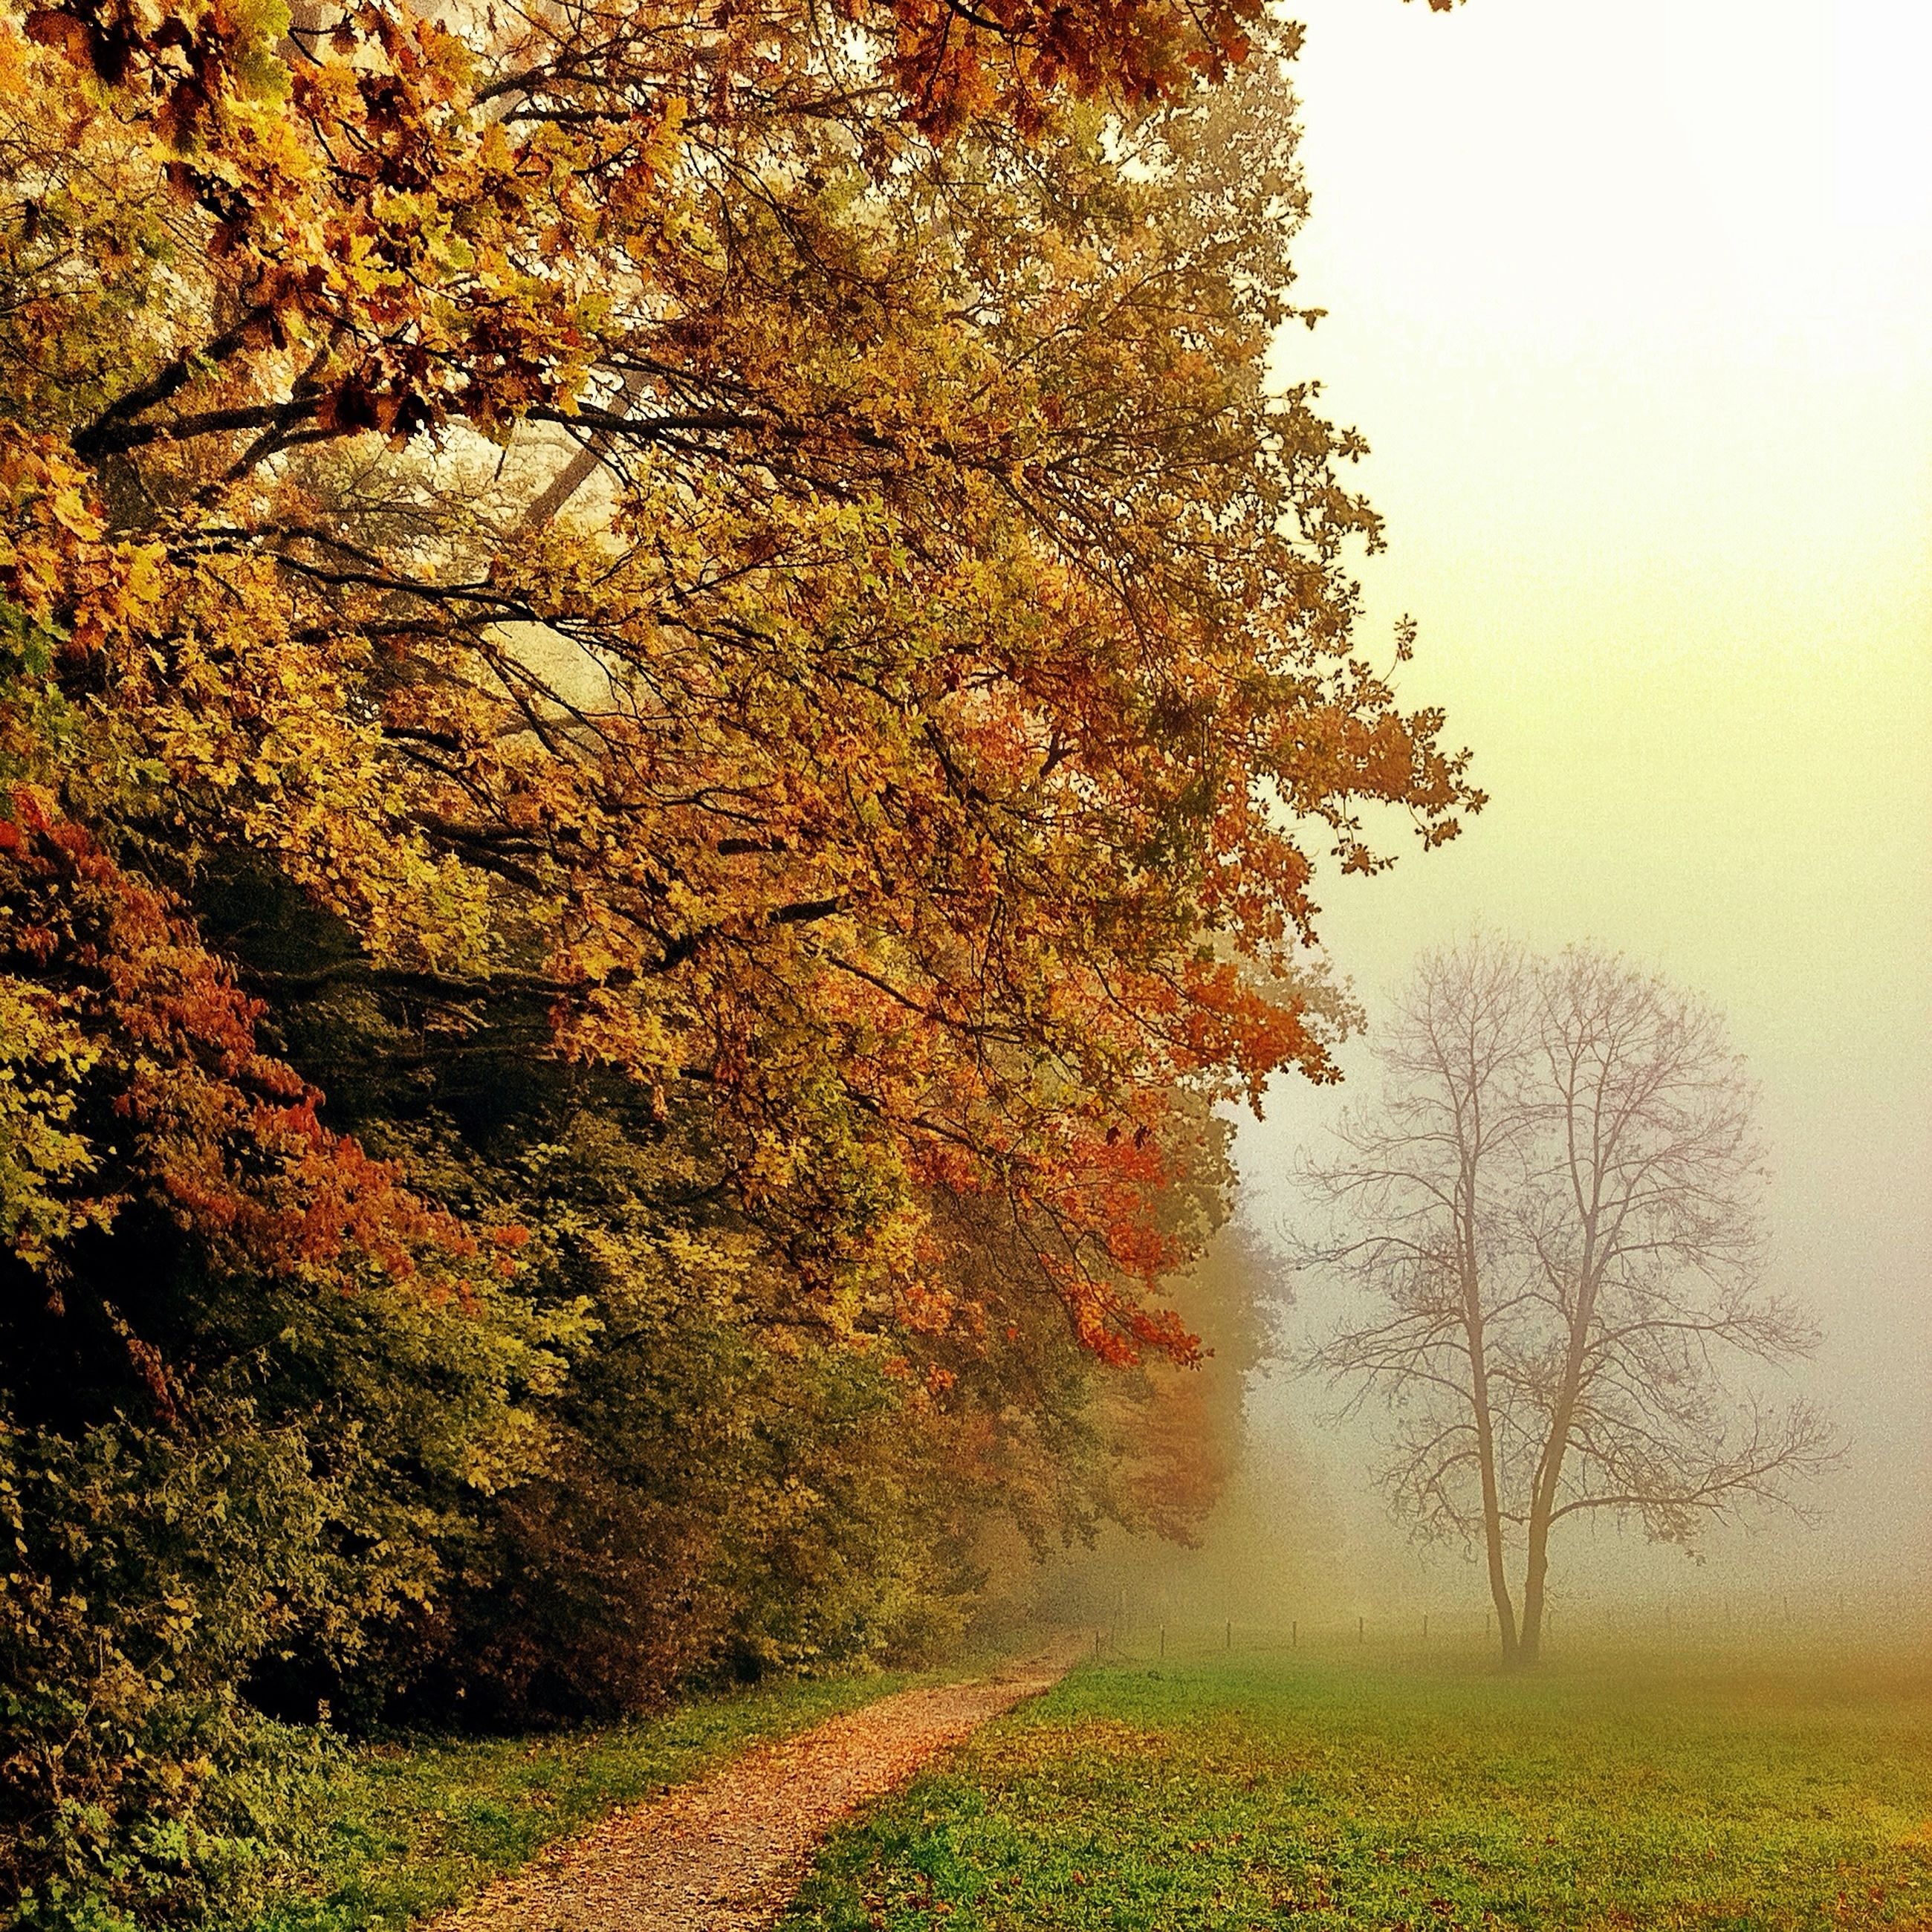 tree, fog, foggy, tranquility, tranquil scene, nature, growth, field, landscape, beauty in nature, weather, scenics, season, branch, non-urban scene, grass, outdoors, day, autumn